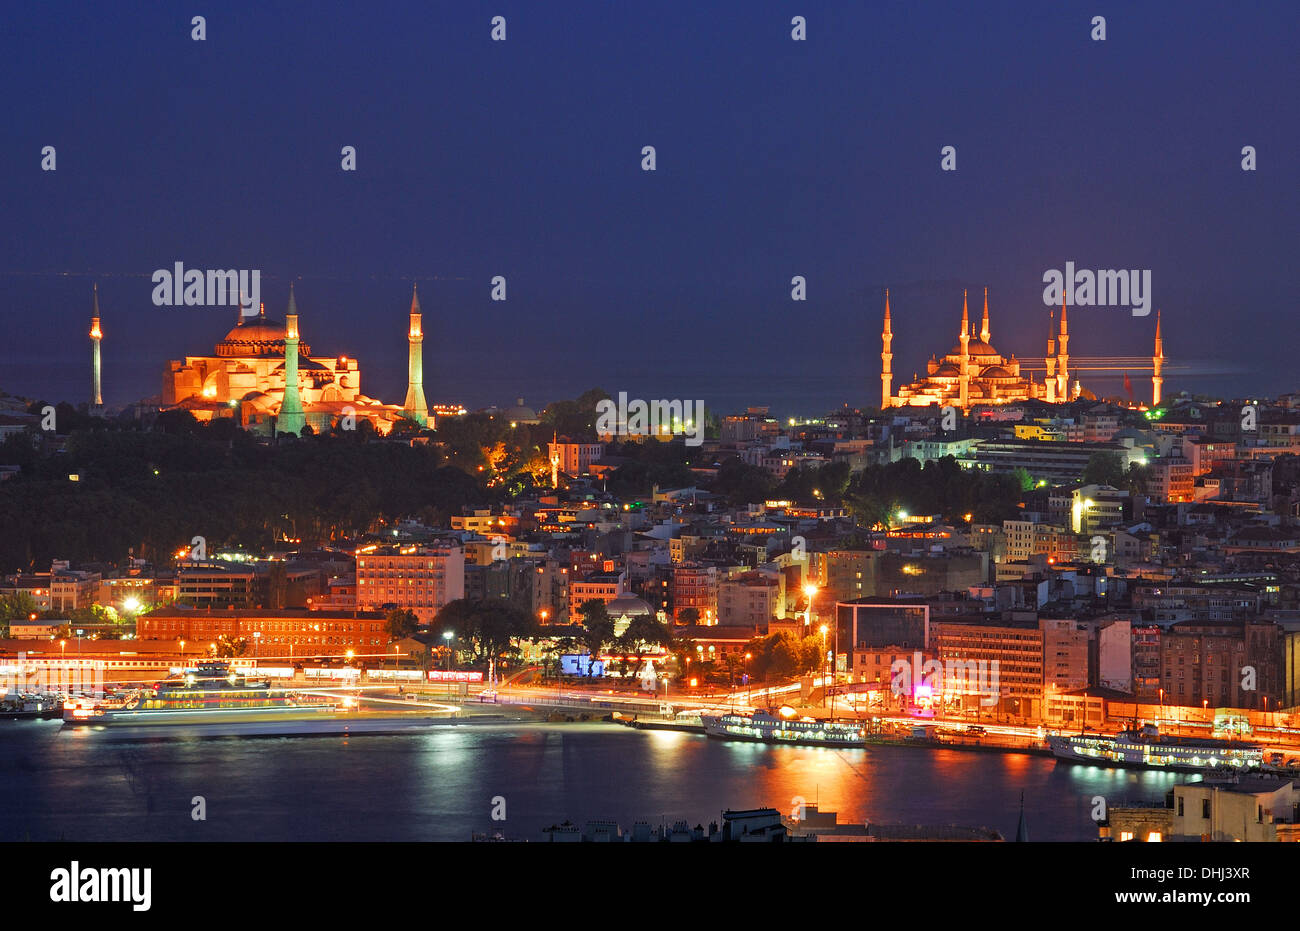 ISTANBUL, TURKEY. A nighttime view of Eminonu and Sultanahmet, the Golden Horn, Aya Sofia (left) and the Blue Mosque (right). - Stock Image